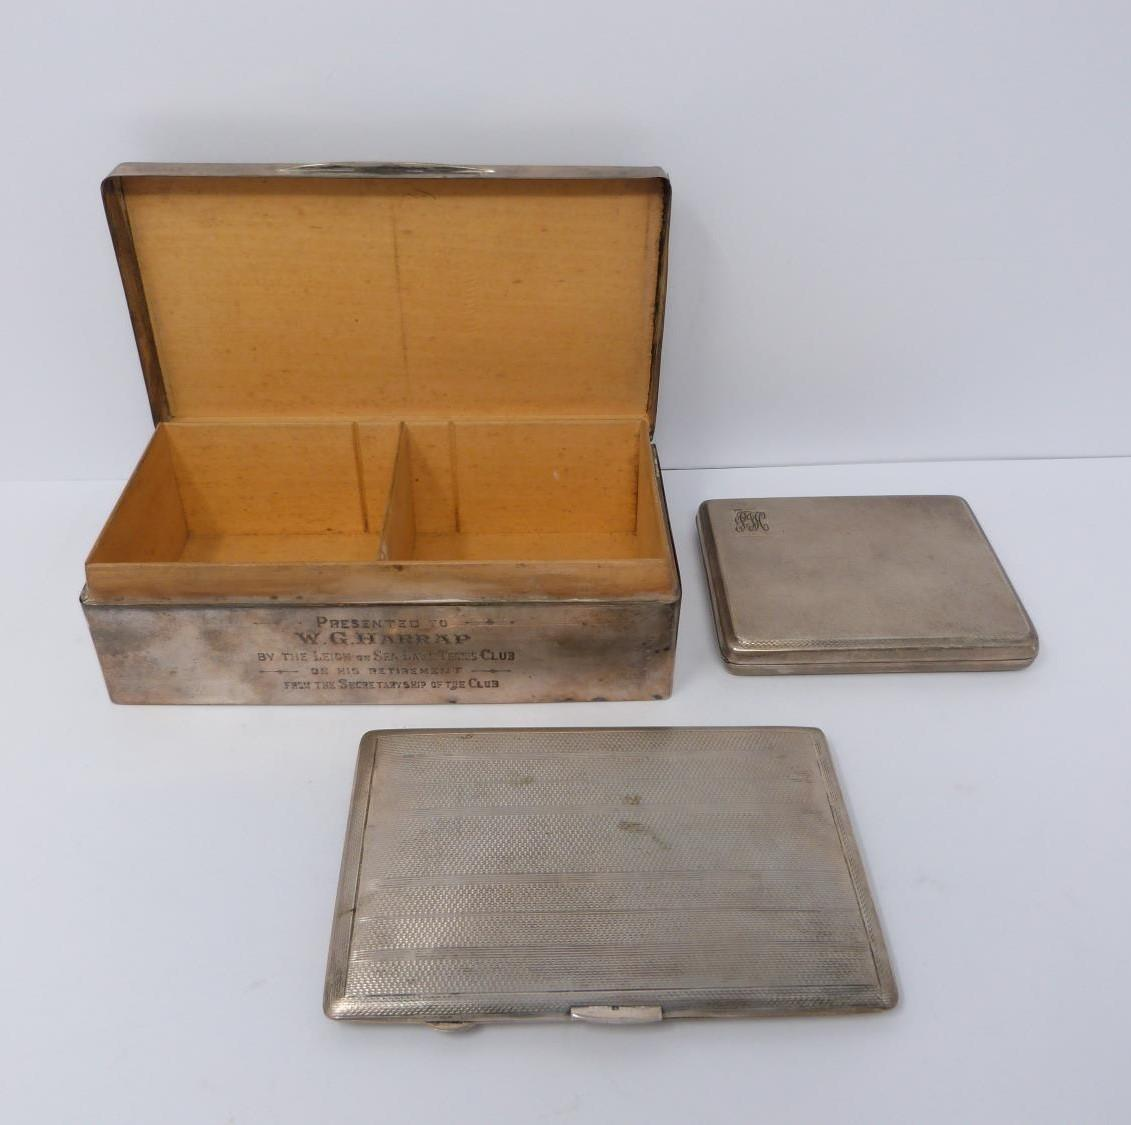 Two silver cigarette cases and a silver cigarette box, rectangular engine turned decoration case, - Image 2 of 14